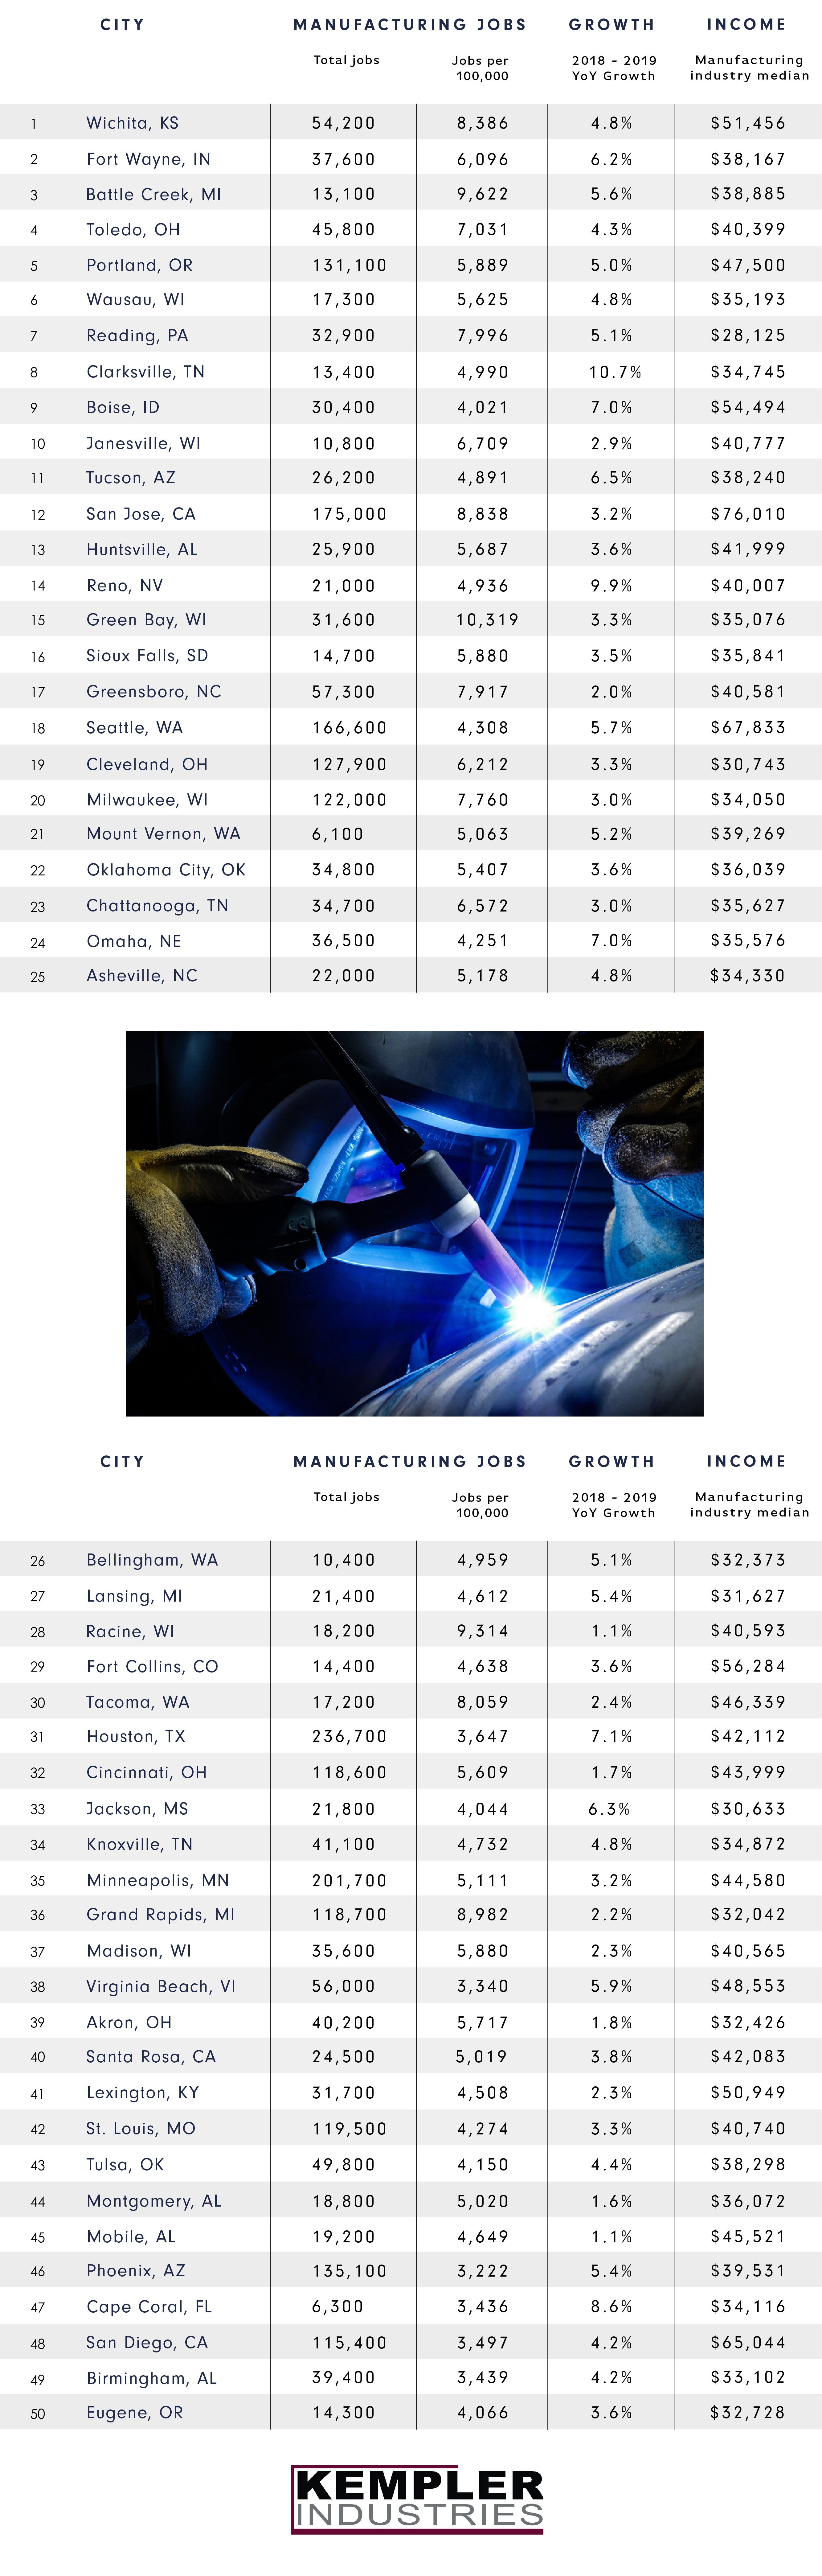 manufacturing jobs by city